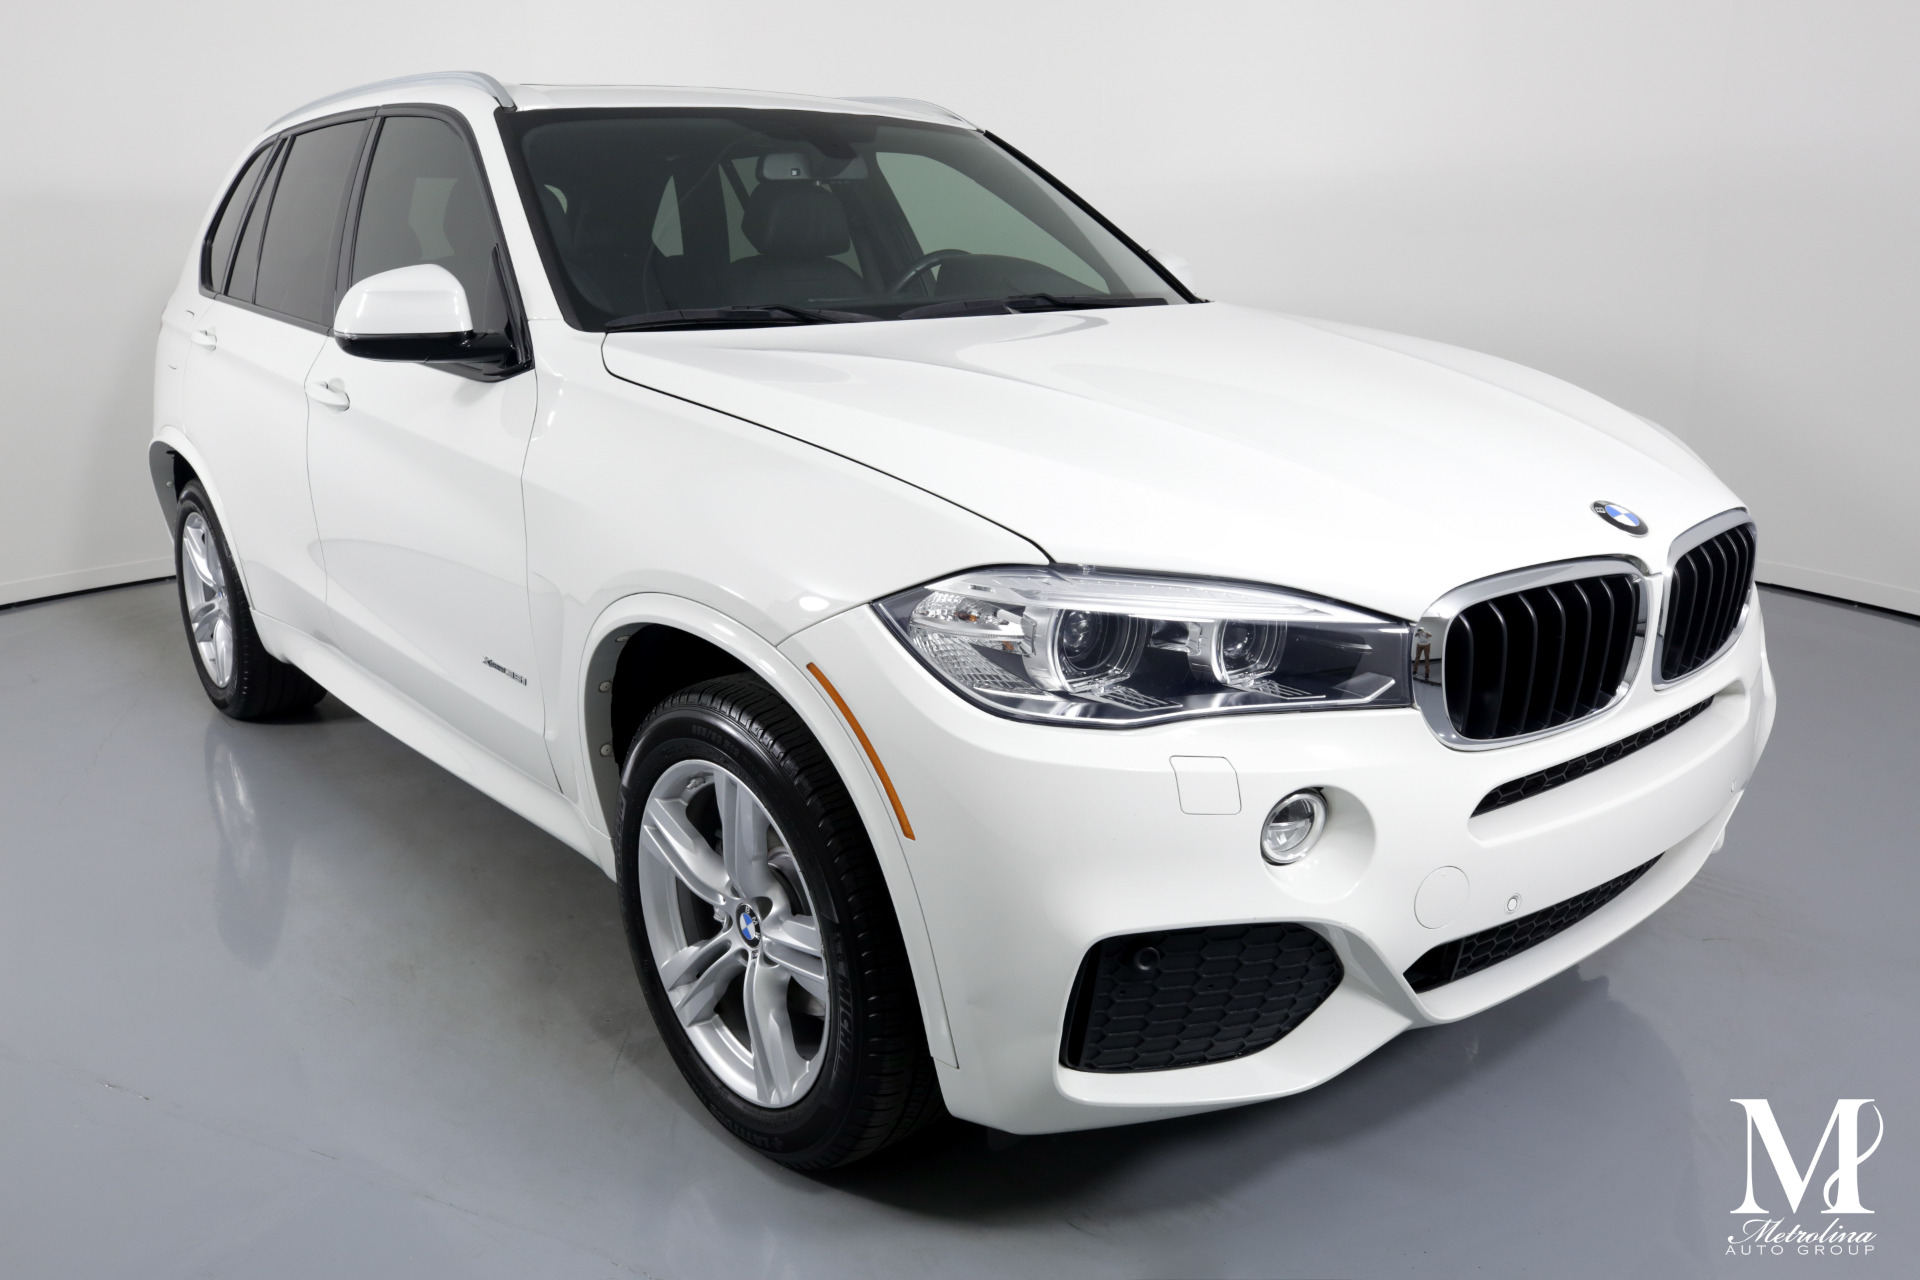 Used 2017 BMW X5 xDrive35i for sale $34,996 at Metrolina Auto Group in Charlotte NC 28217 - 2